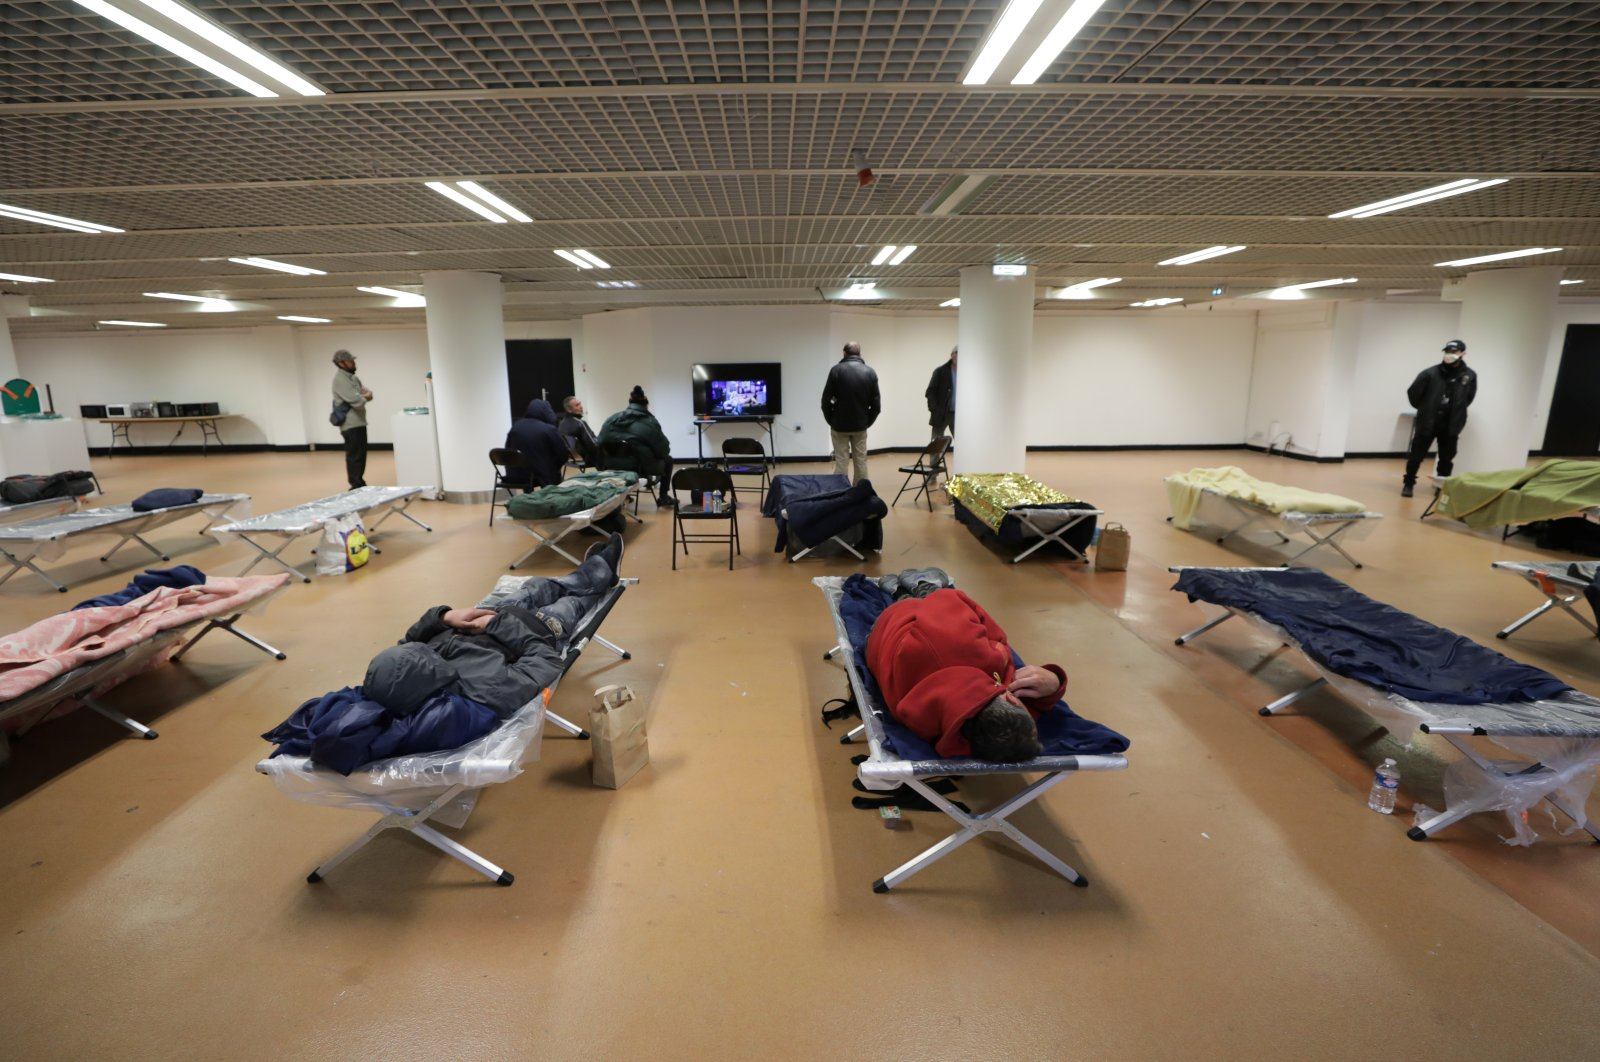 Homeless people sleep inside the Festival palace in France, Tuesday, March 24, 2020. (Reuters Photo)